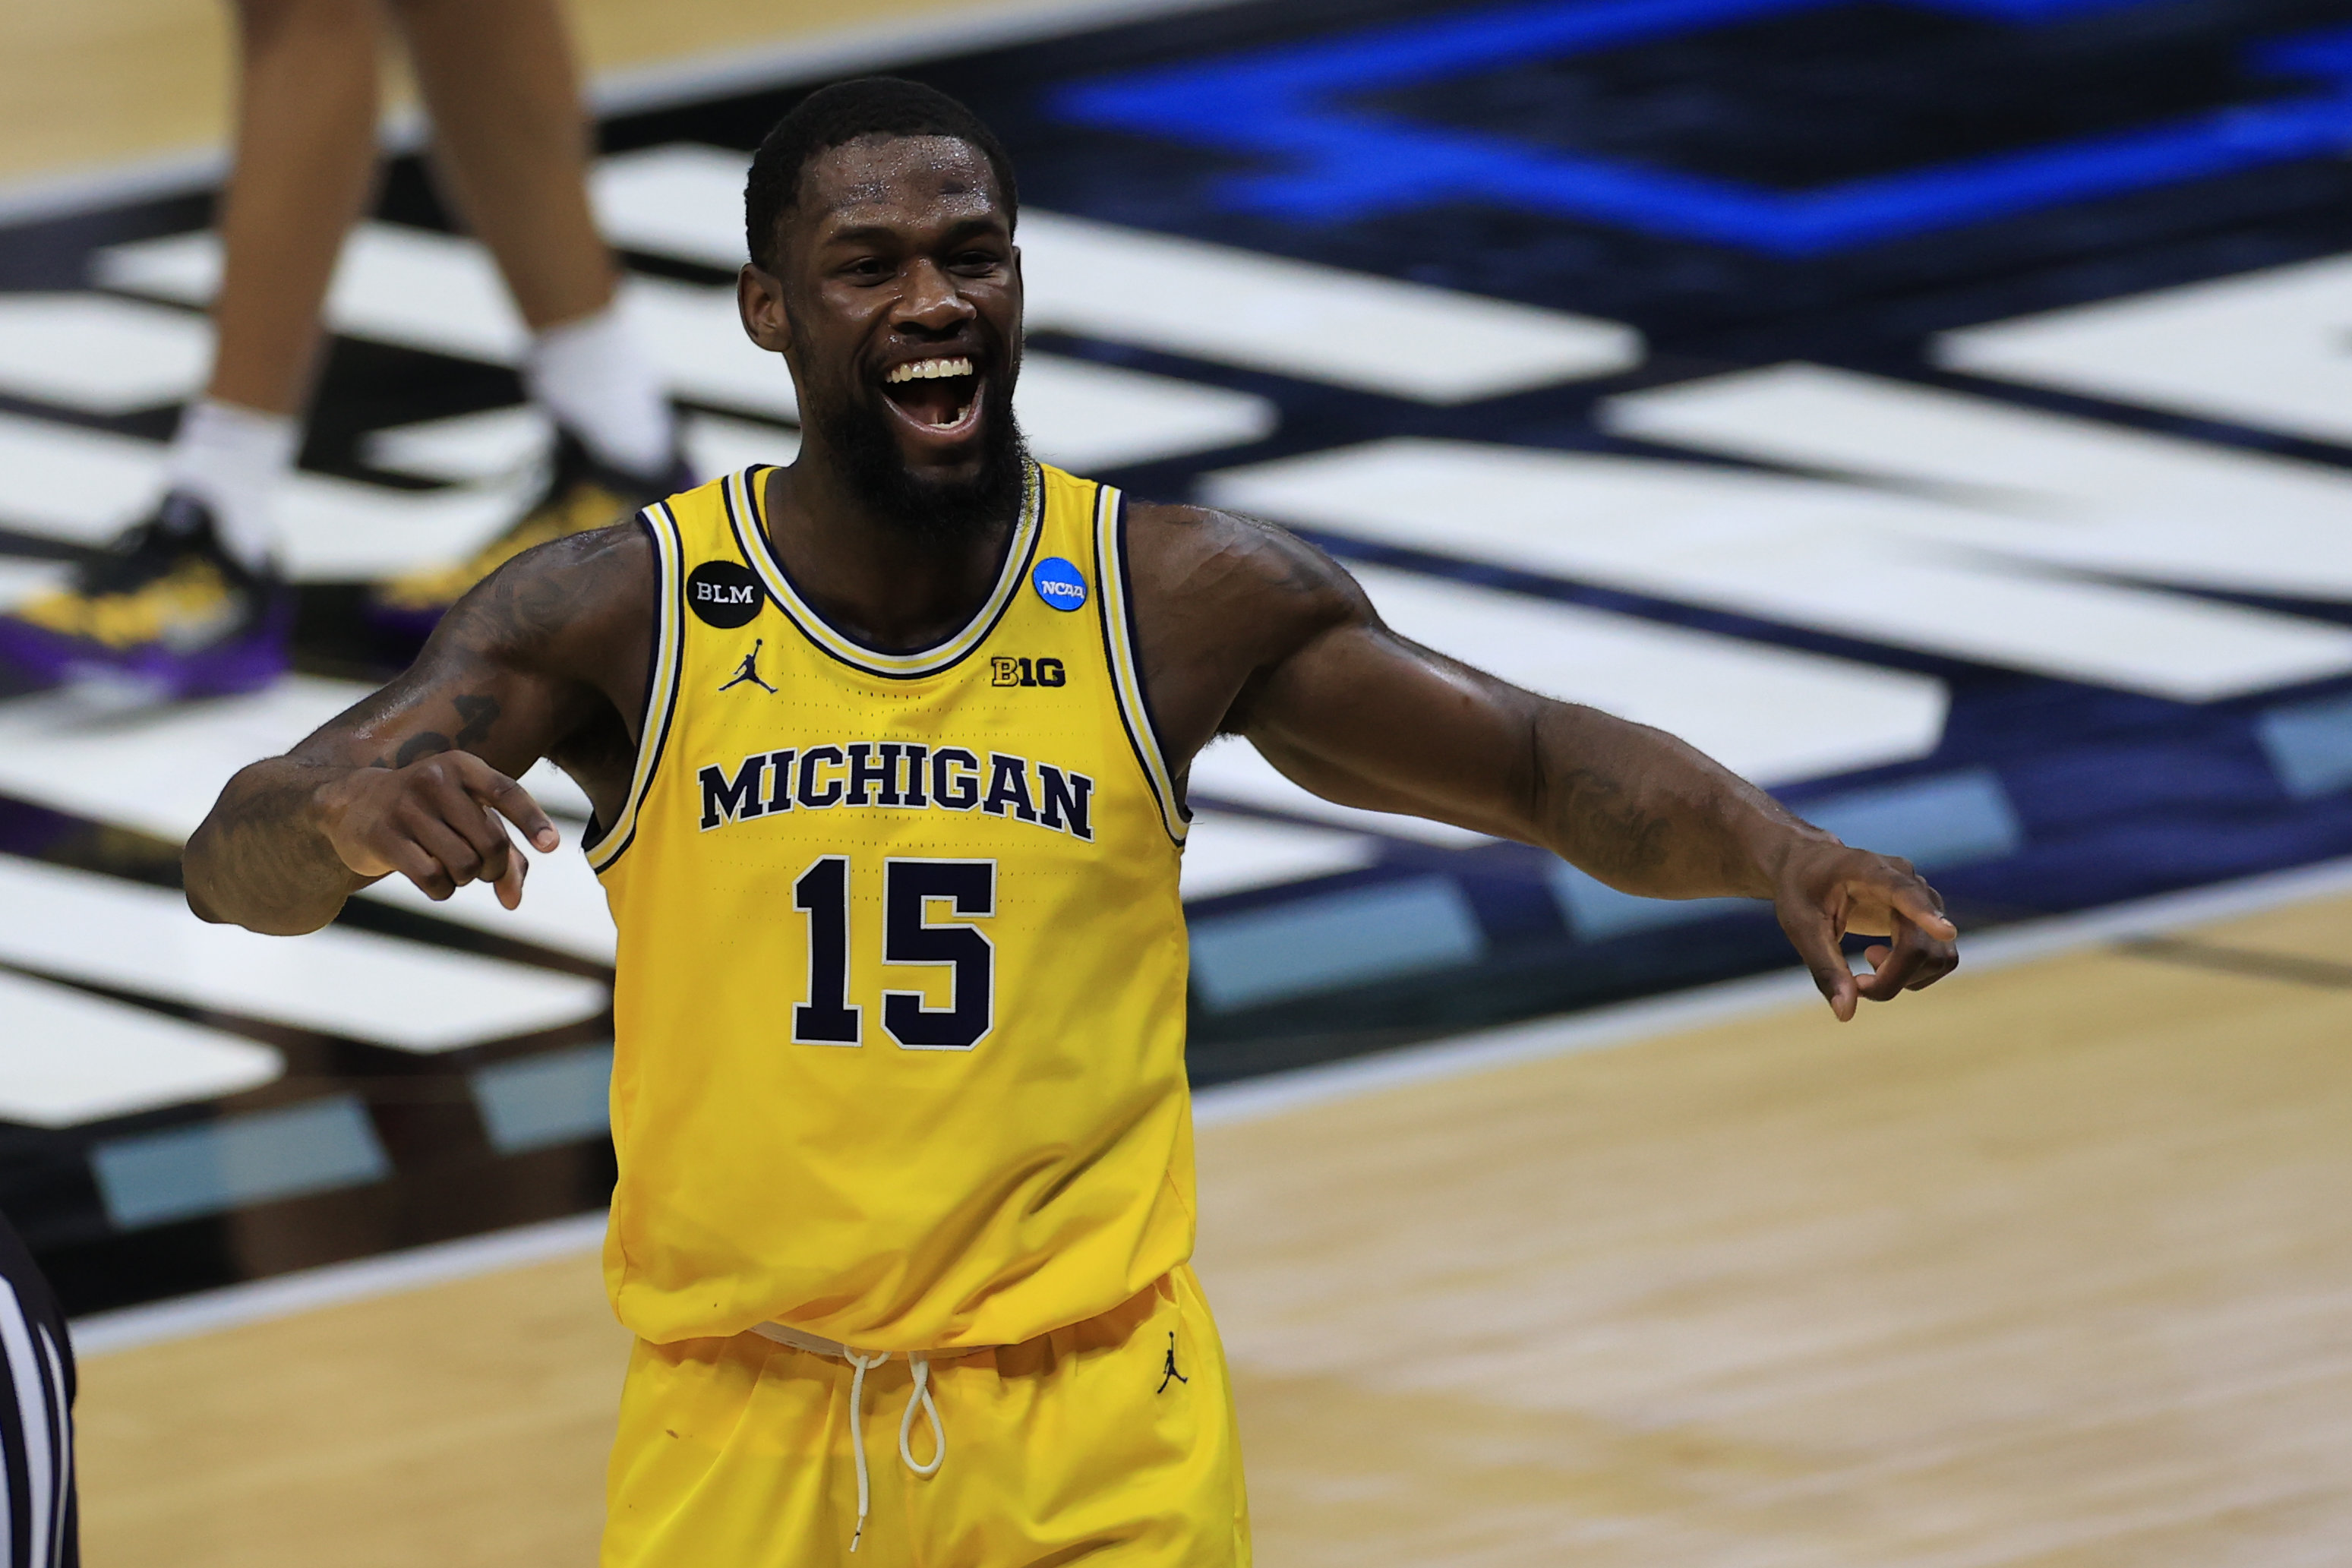 Mar 22, 2021; Indianapolis, Indiana, USA; Michigan Wolverines guard Chaundee Brown (15) celebrates after the game in the second round of the 2021 NCAA Tournament against the Louisiana State Tigers at Lucas Oil Stadium.